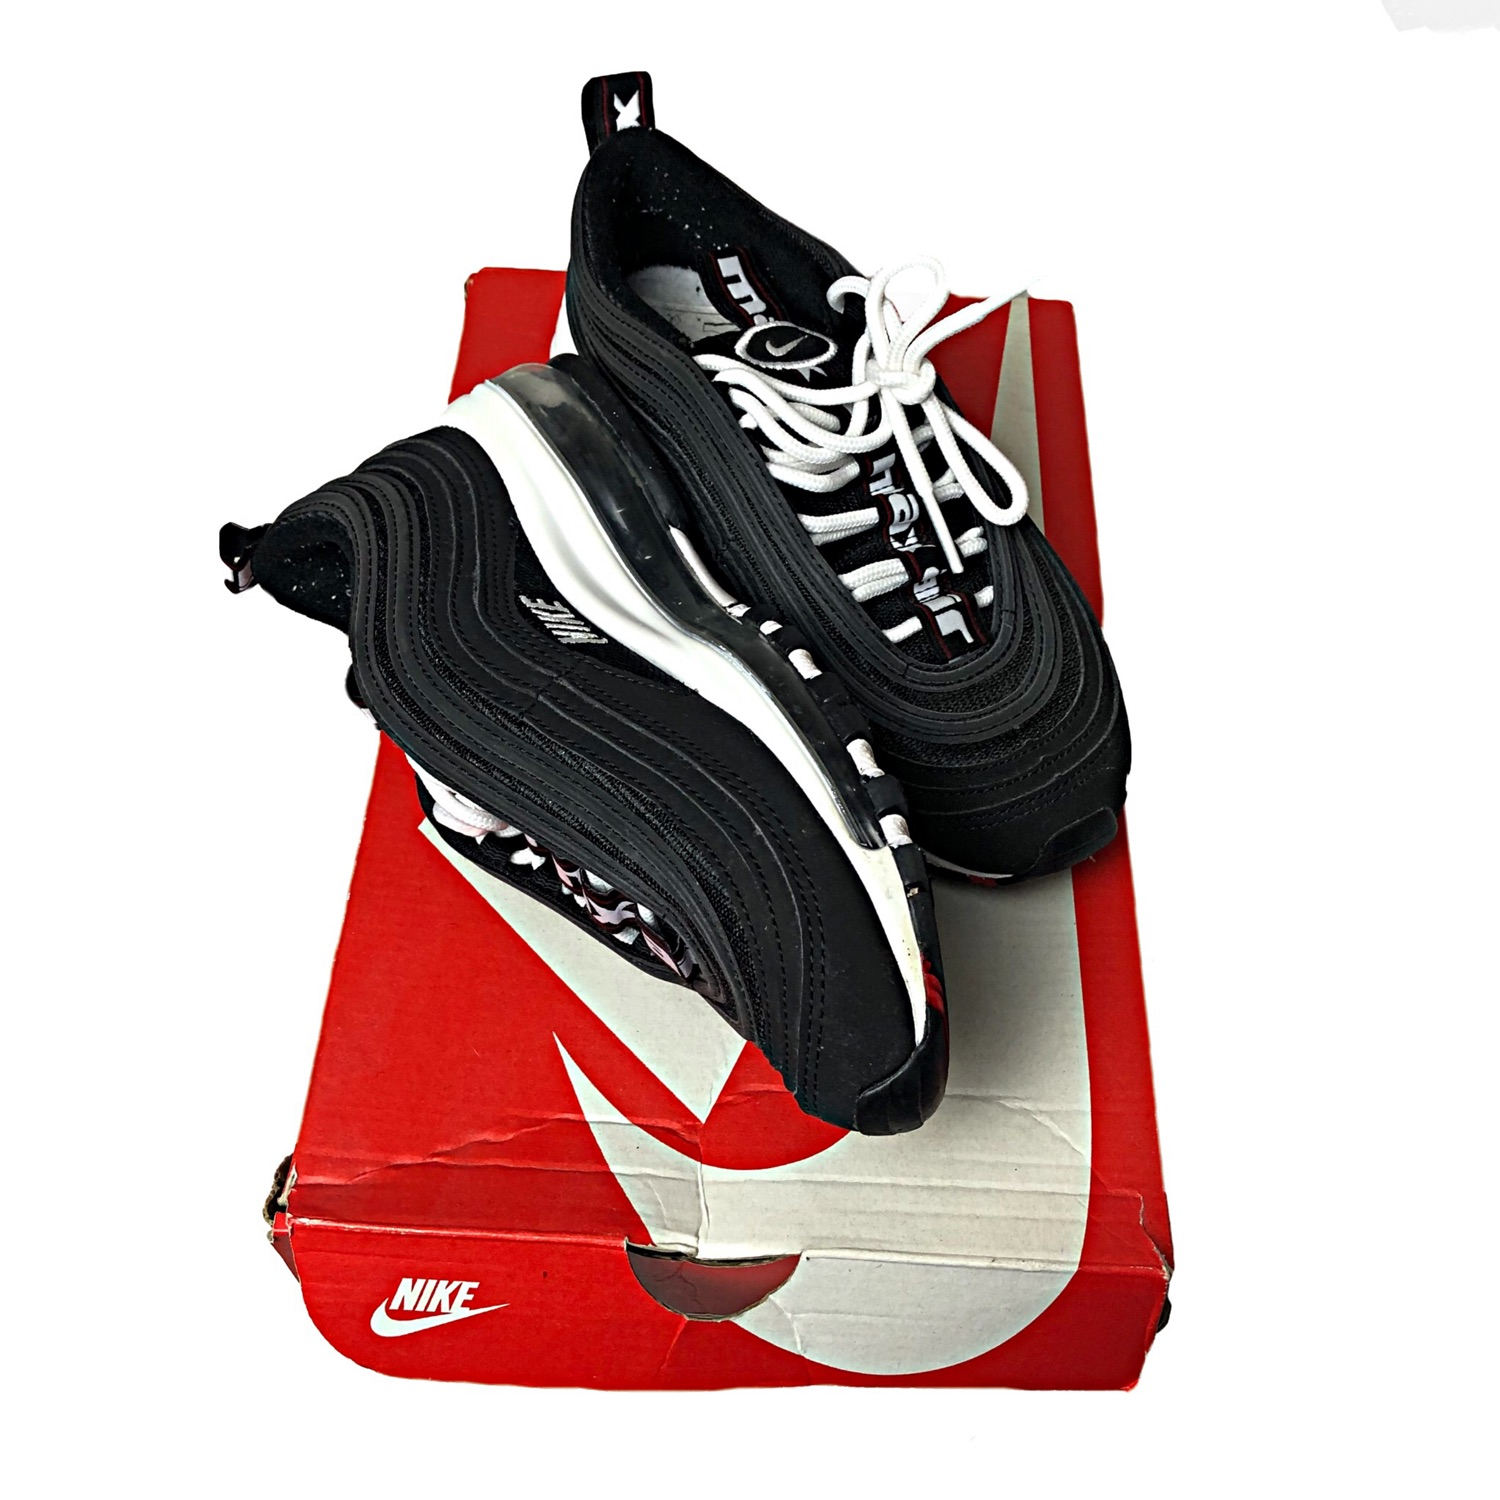 uk availability 53bd0 ea102 Nike Air Max 97 Child's Size 3